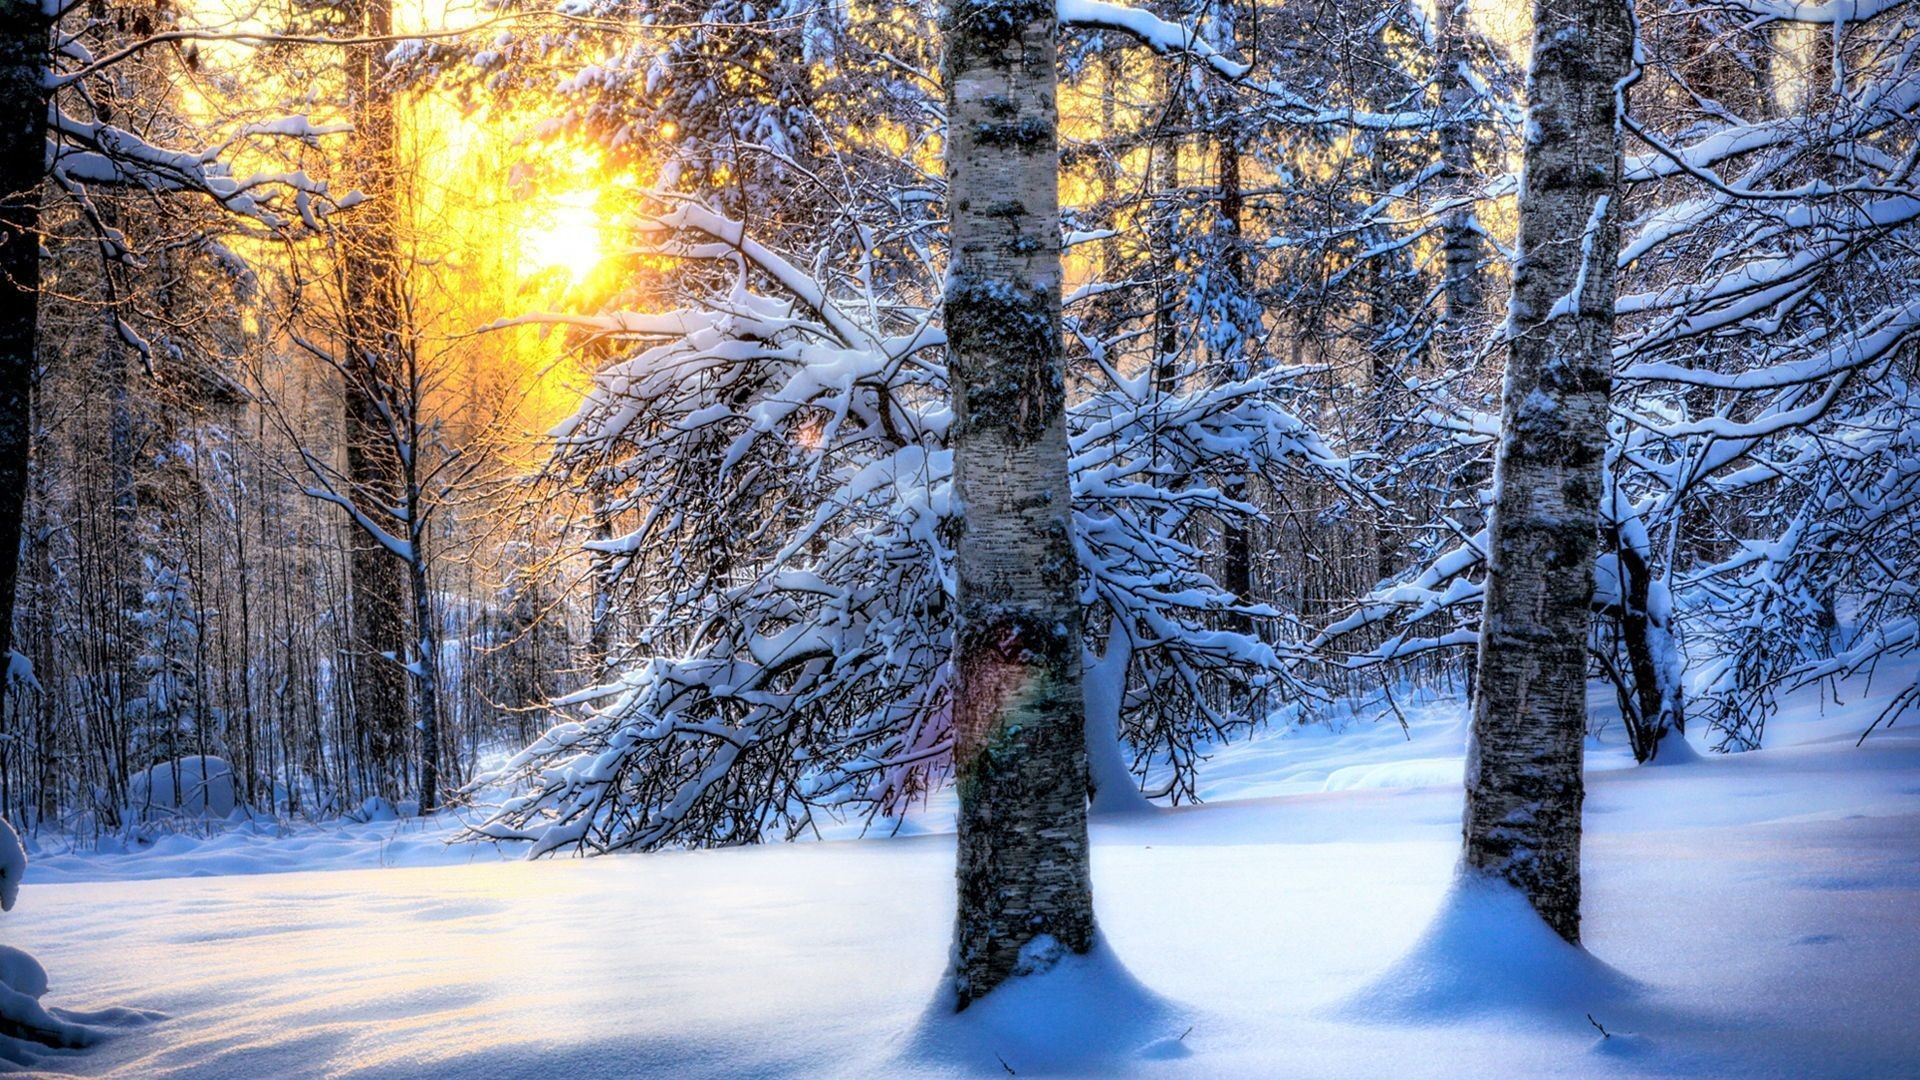 1920x1080 Winter Forest Desktop Wallpaper, Winter Forest Pictures